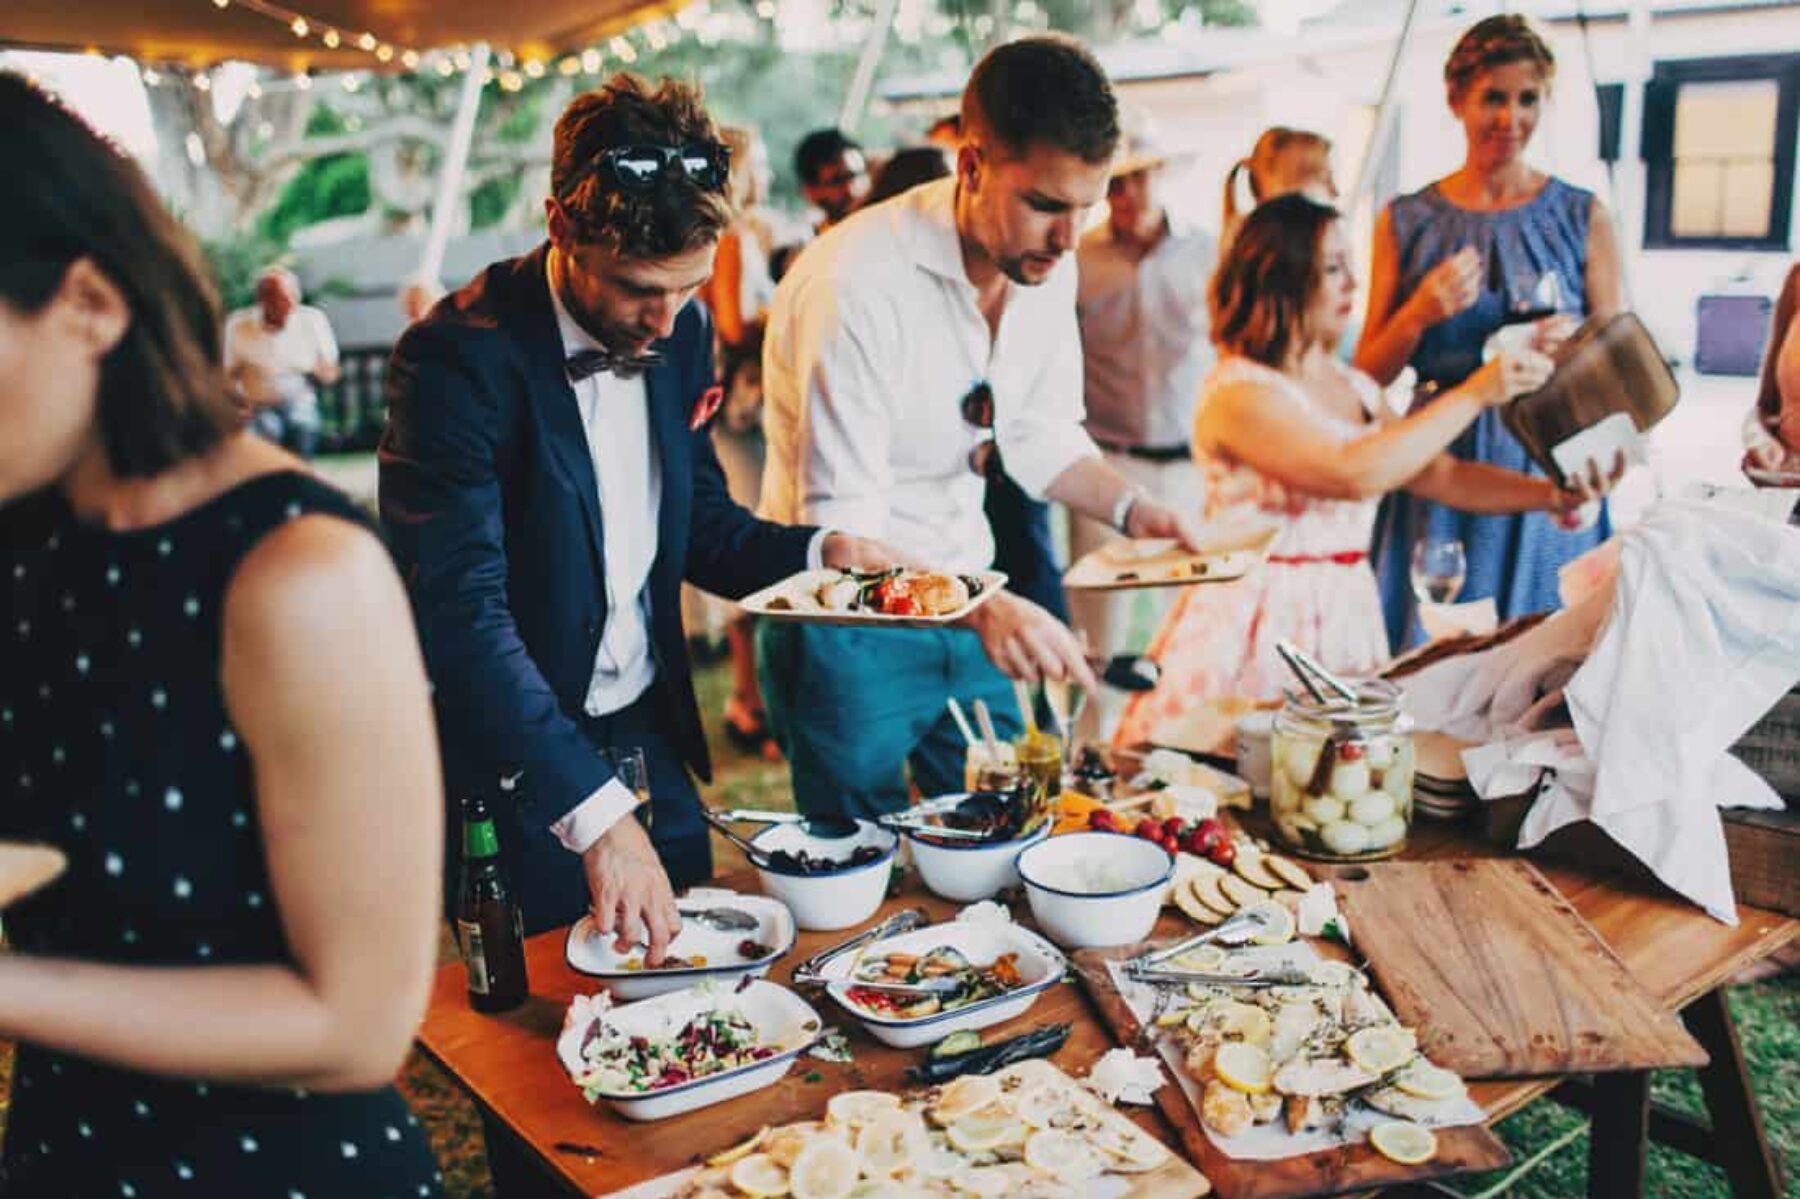 Posh picnic wedding at Centennial Park Sydney